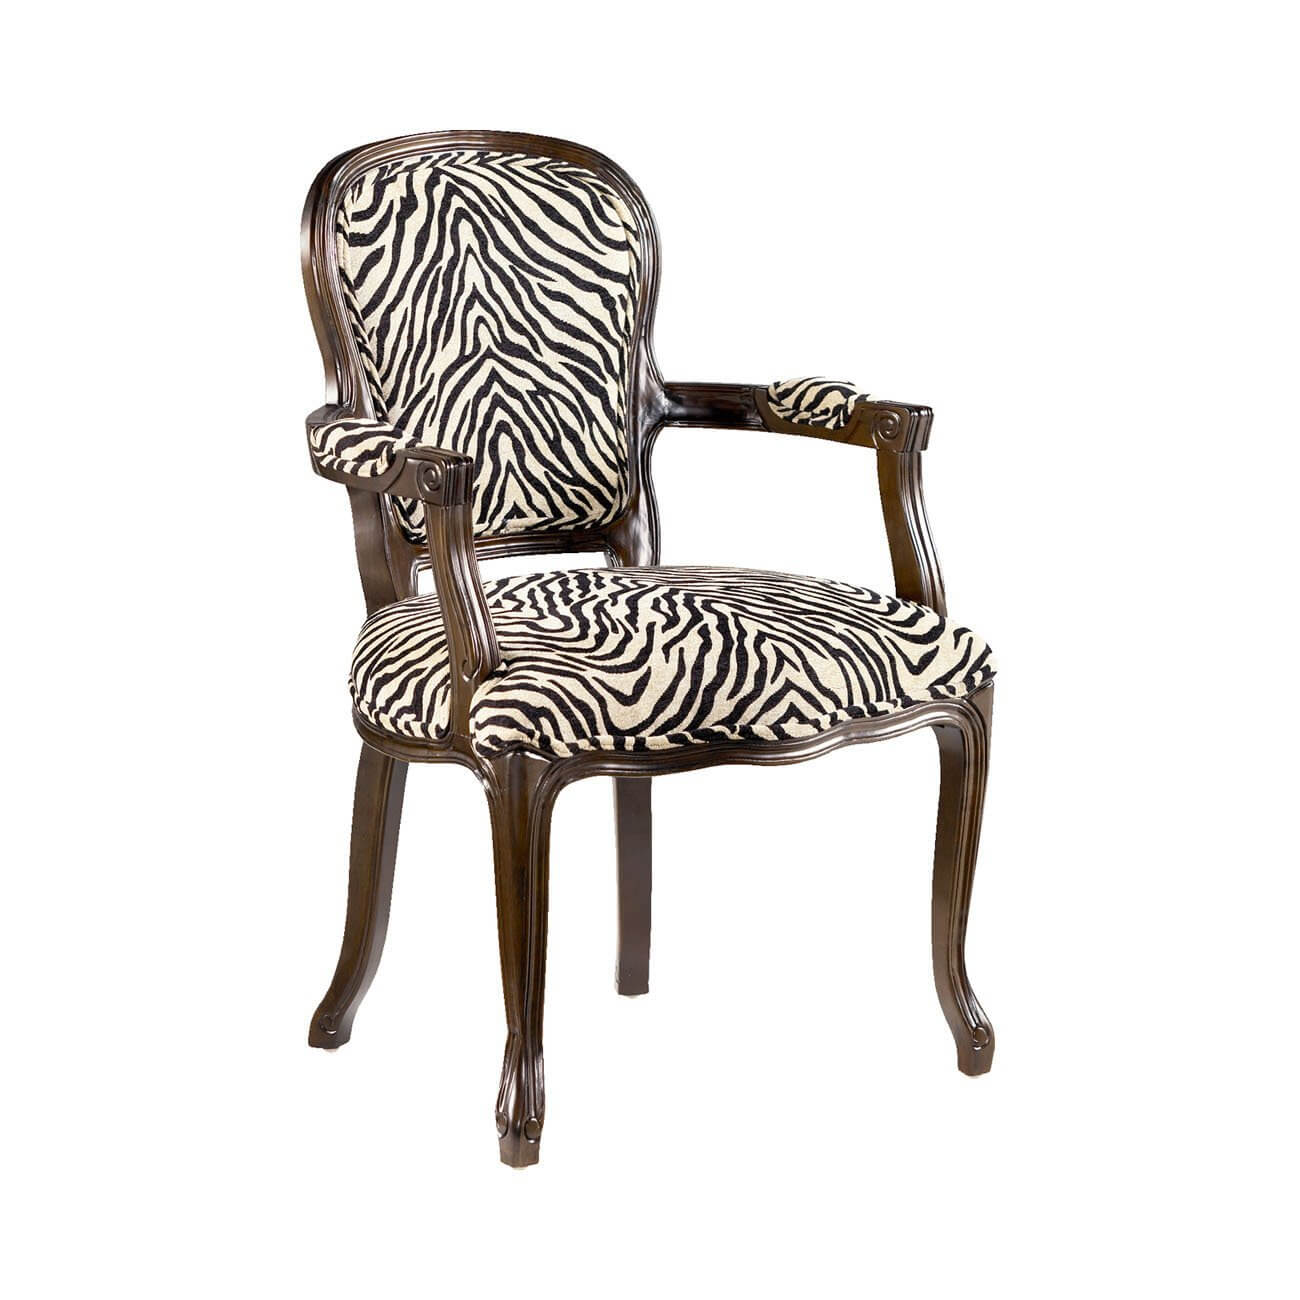 Zebra Print Armchair with Wooden Frame